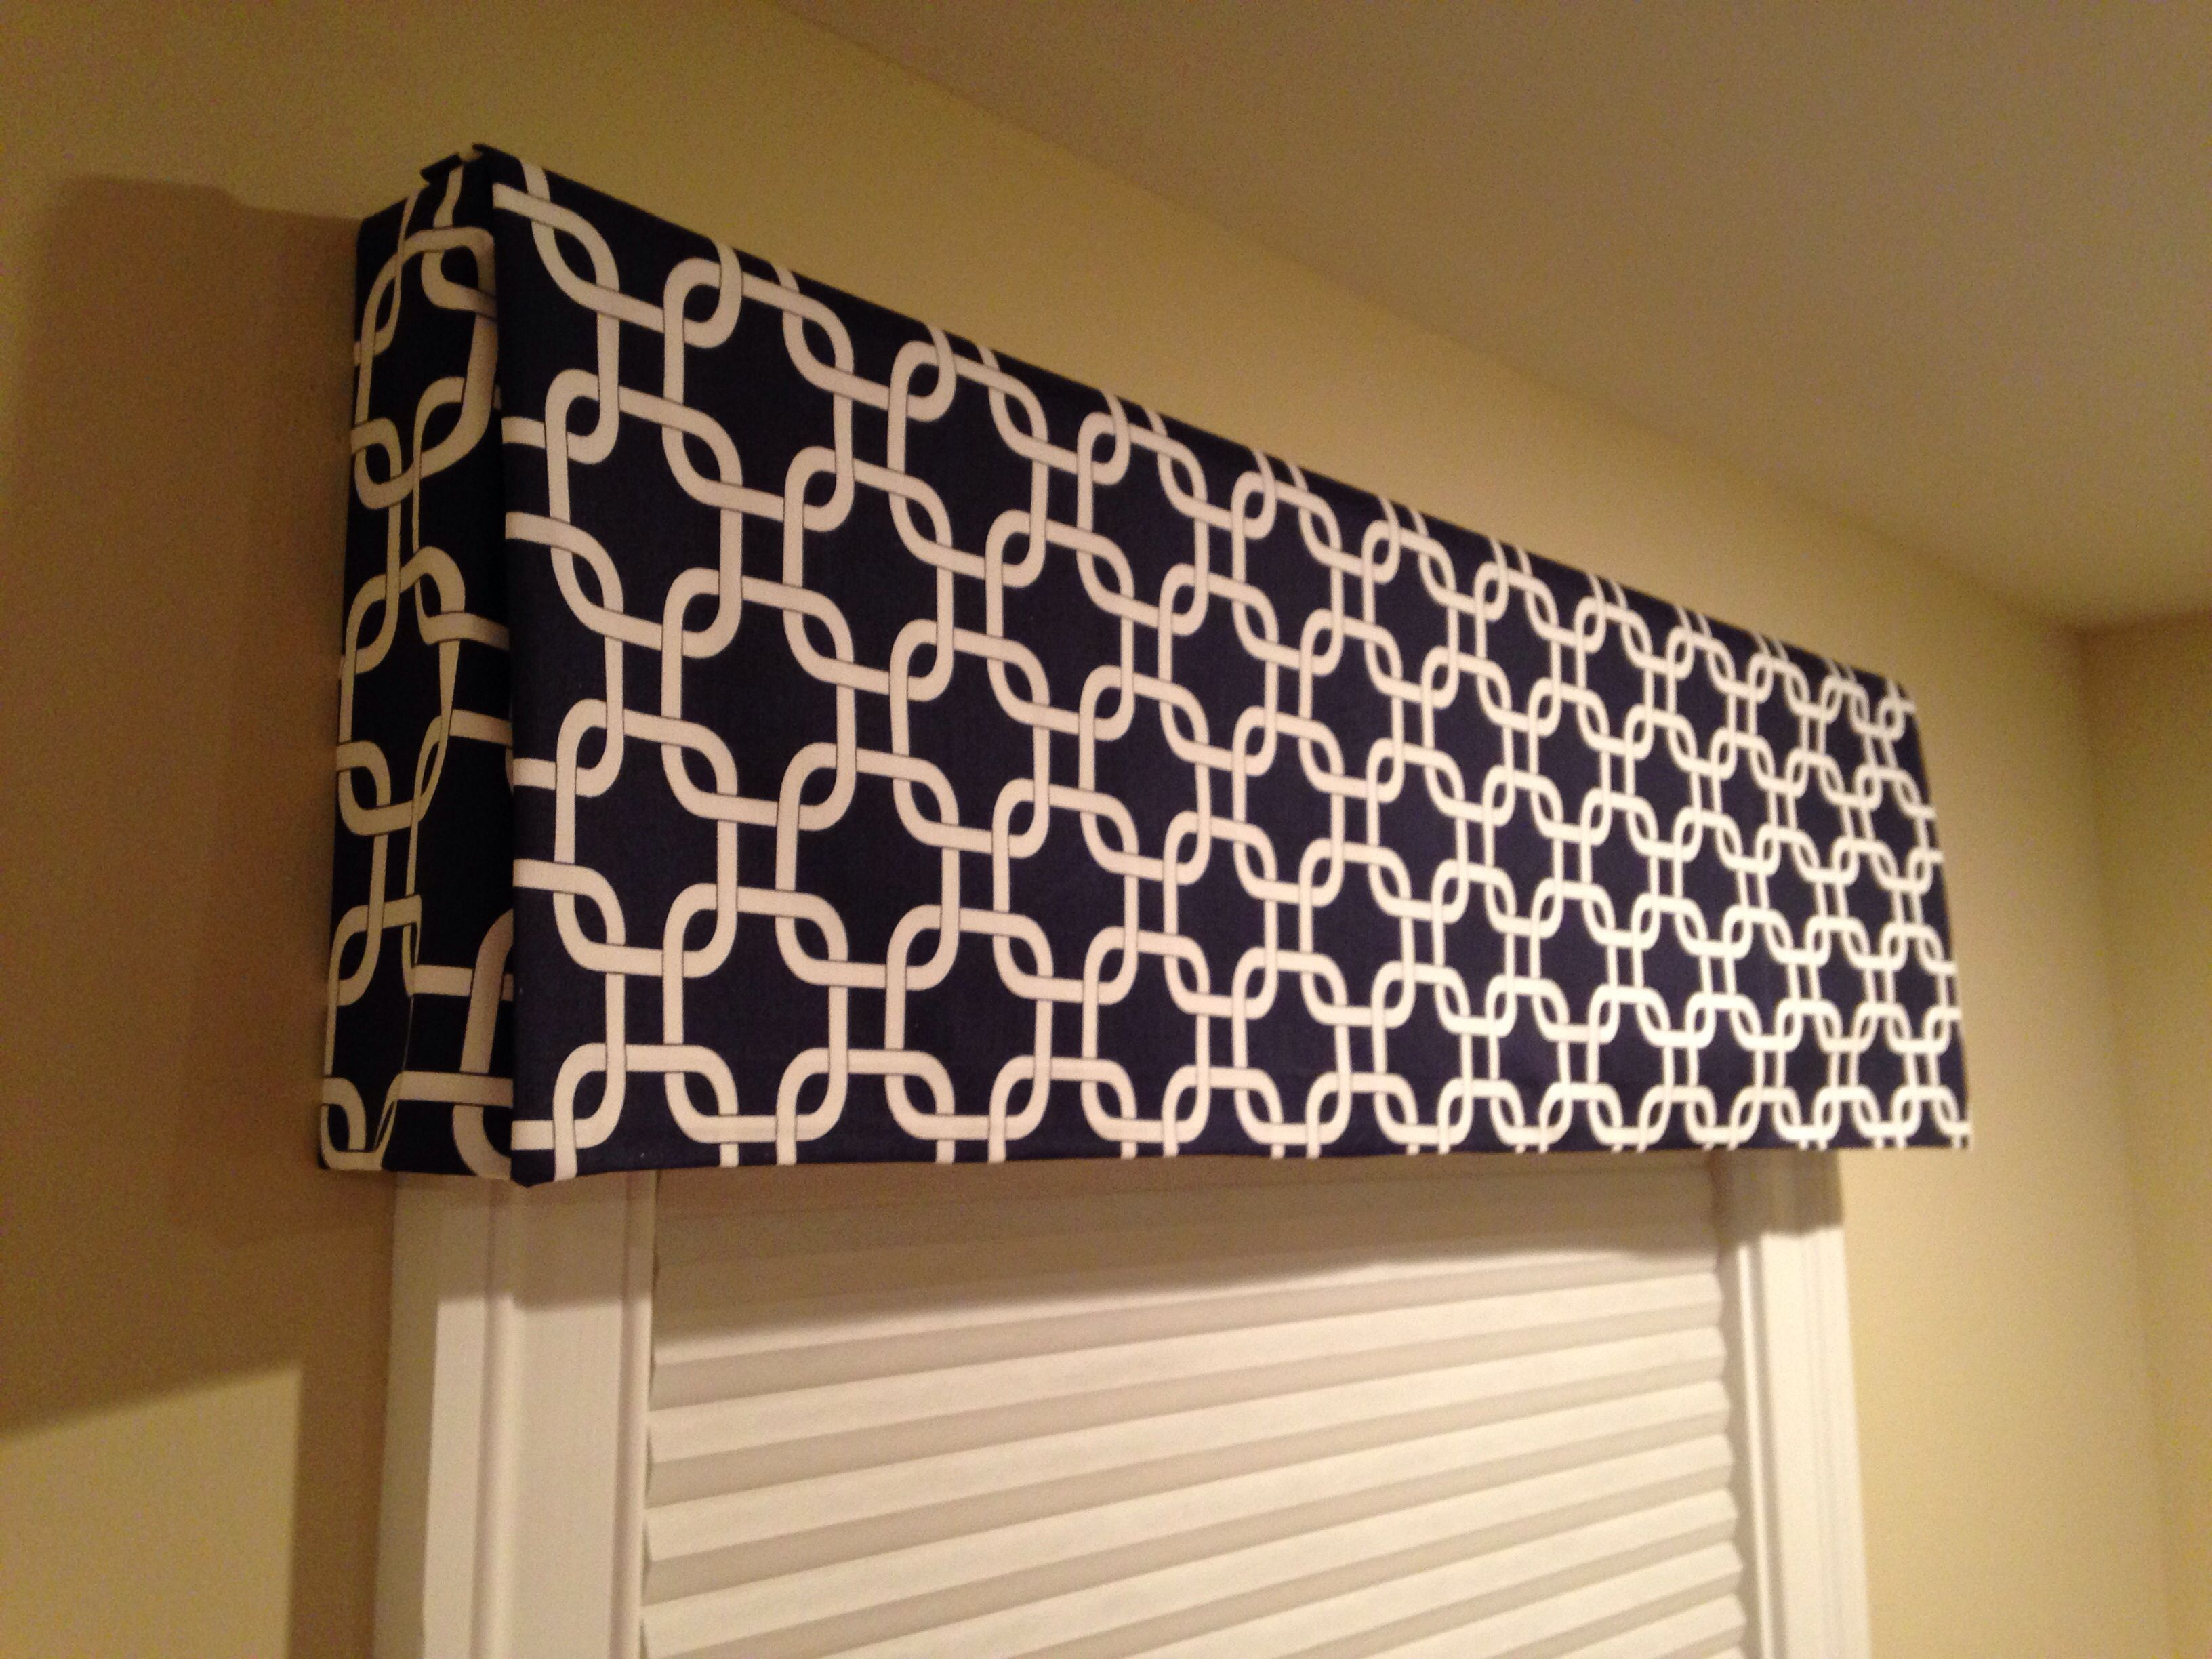 Pin By Lqdesign Studio Llc On Around The House Window Valance Diy Diy Valance Diy Window